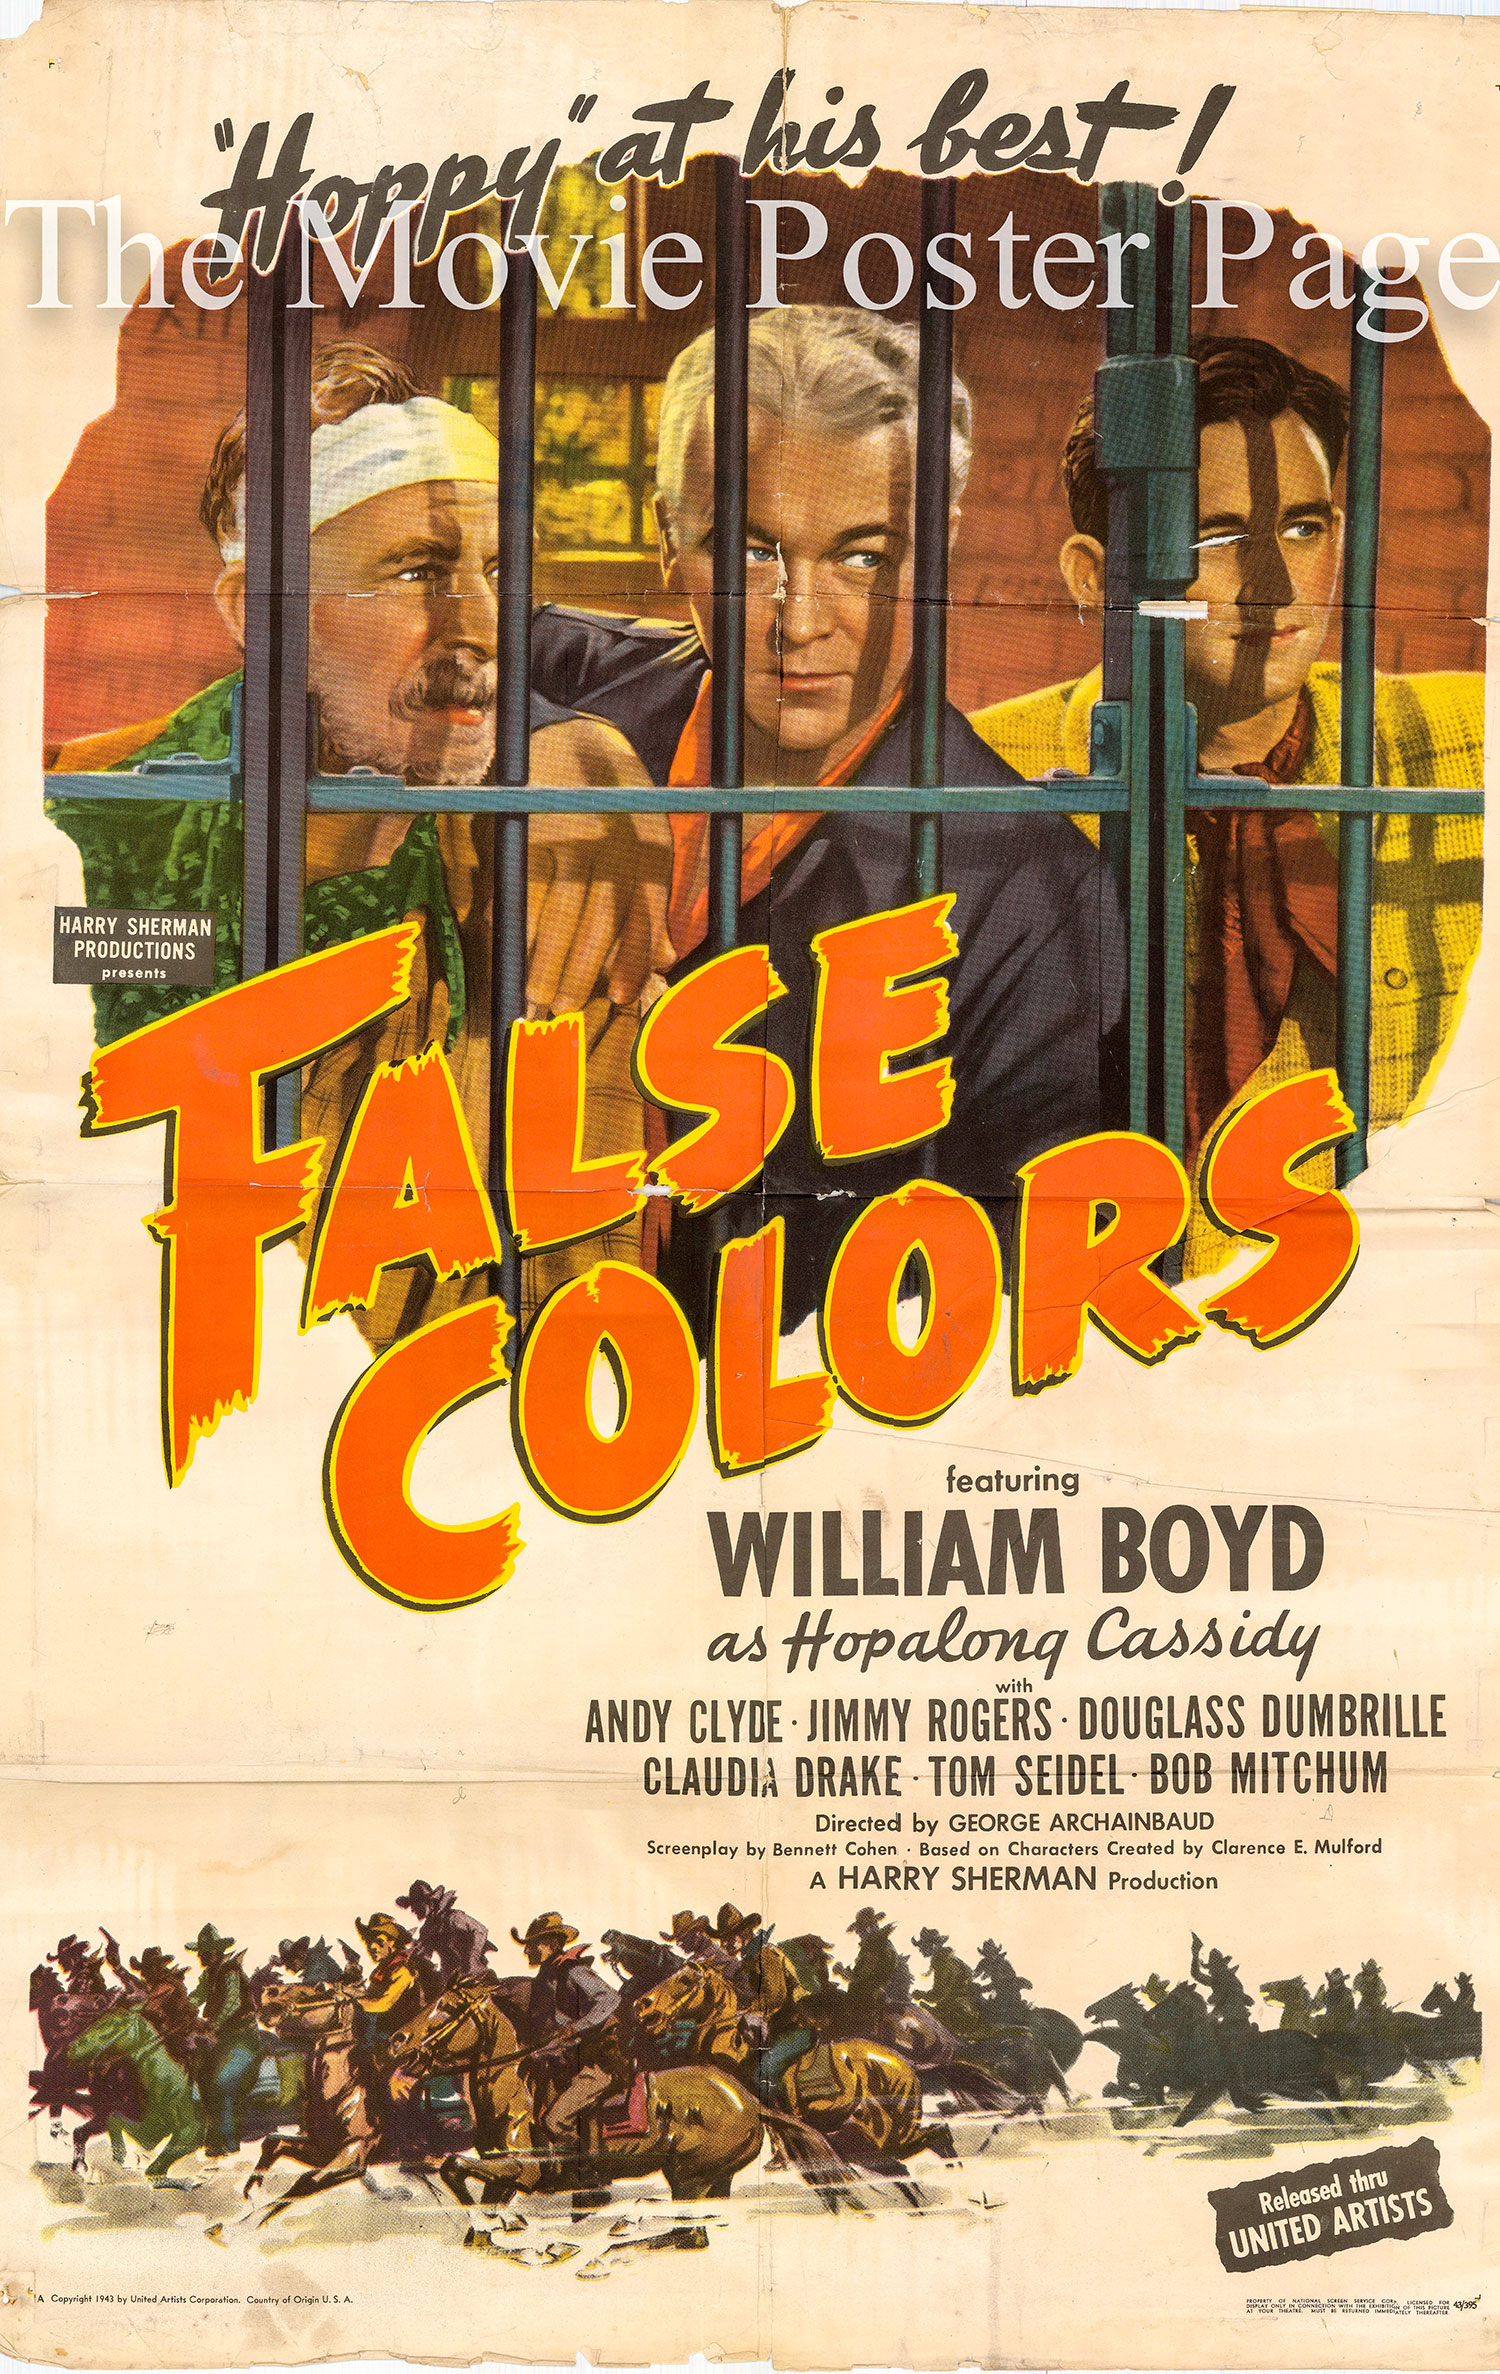 Pictured is a US one-sheet promotional poster for the 1943 George Archainbaud film False Colors starring William Boyd as Hopalong Cassidy.